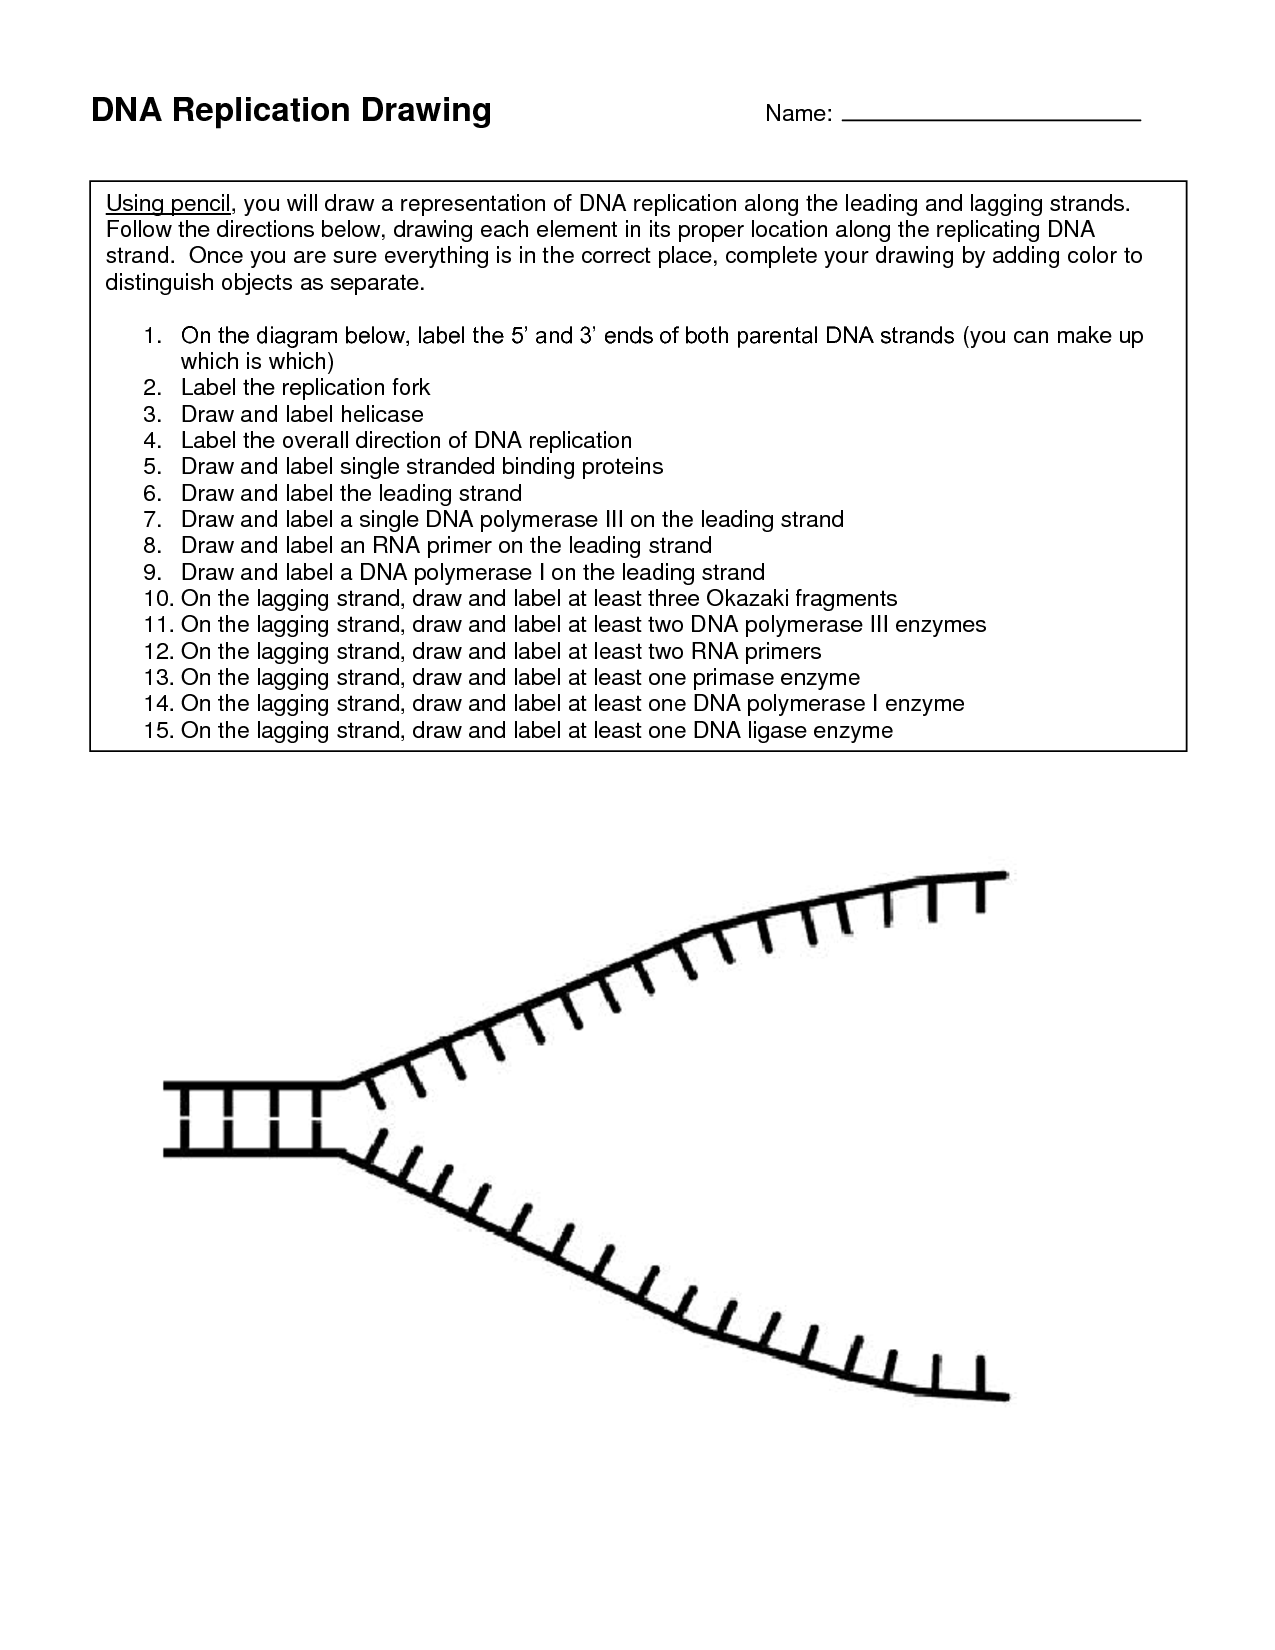 Worksheets Biology Worksheets Pdf lambiase tina honors biology dna replication drawing honors